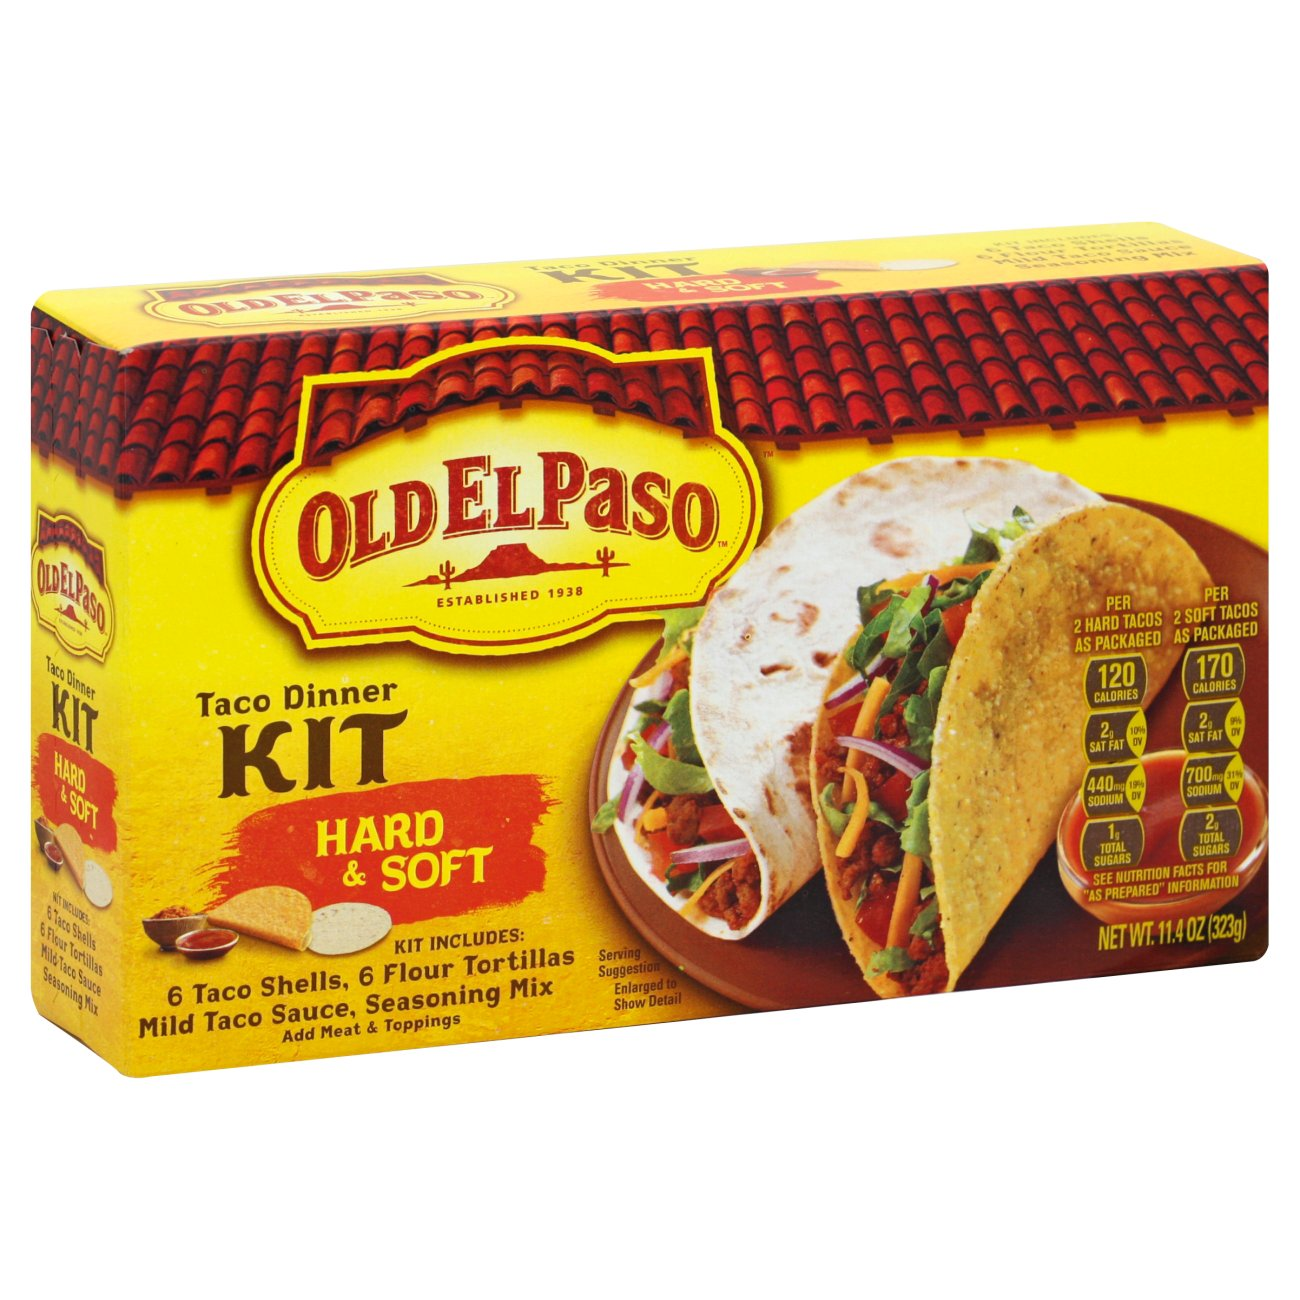 Old El Paso Hard Soft Taco Dinner Kit Shop Tortillas At H E B